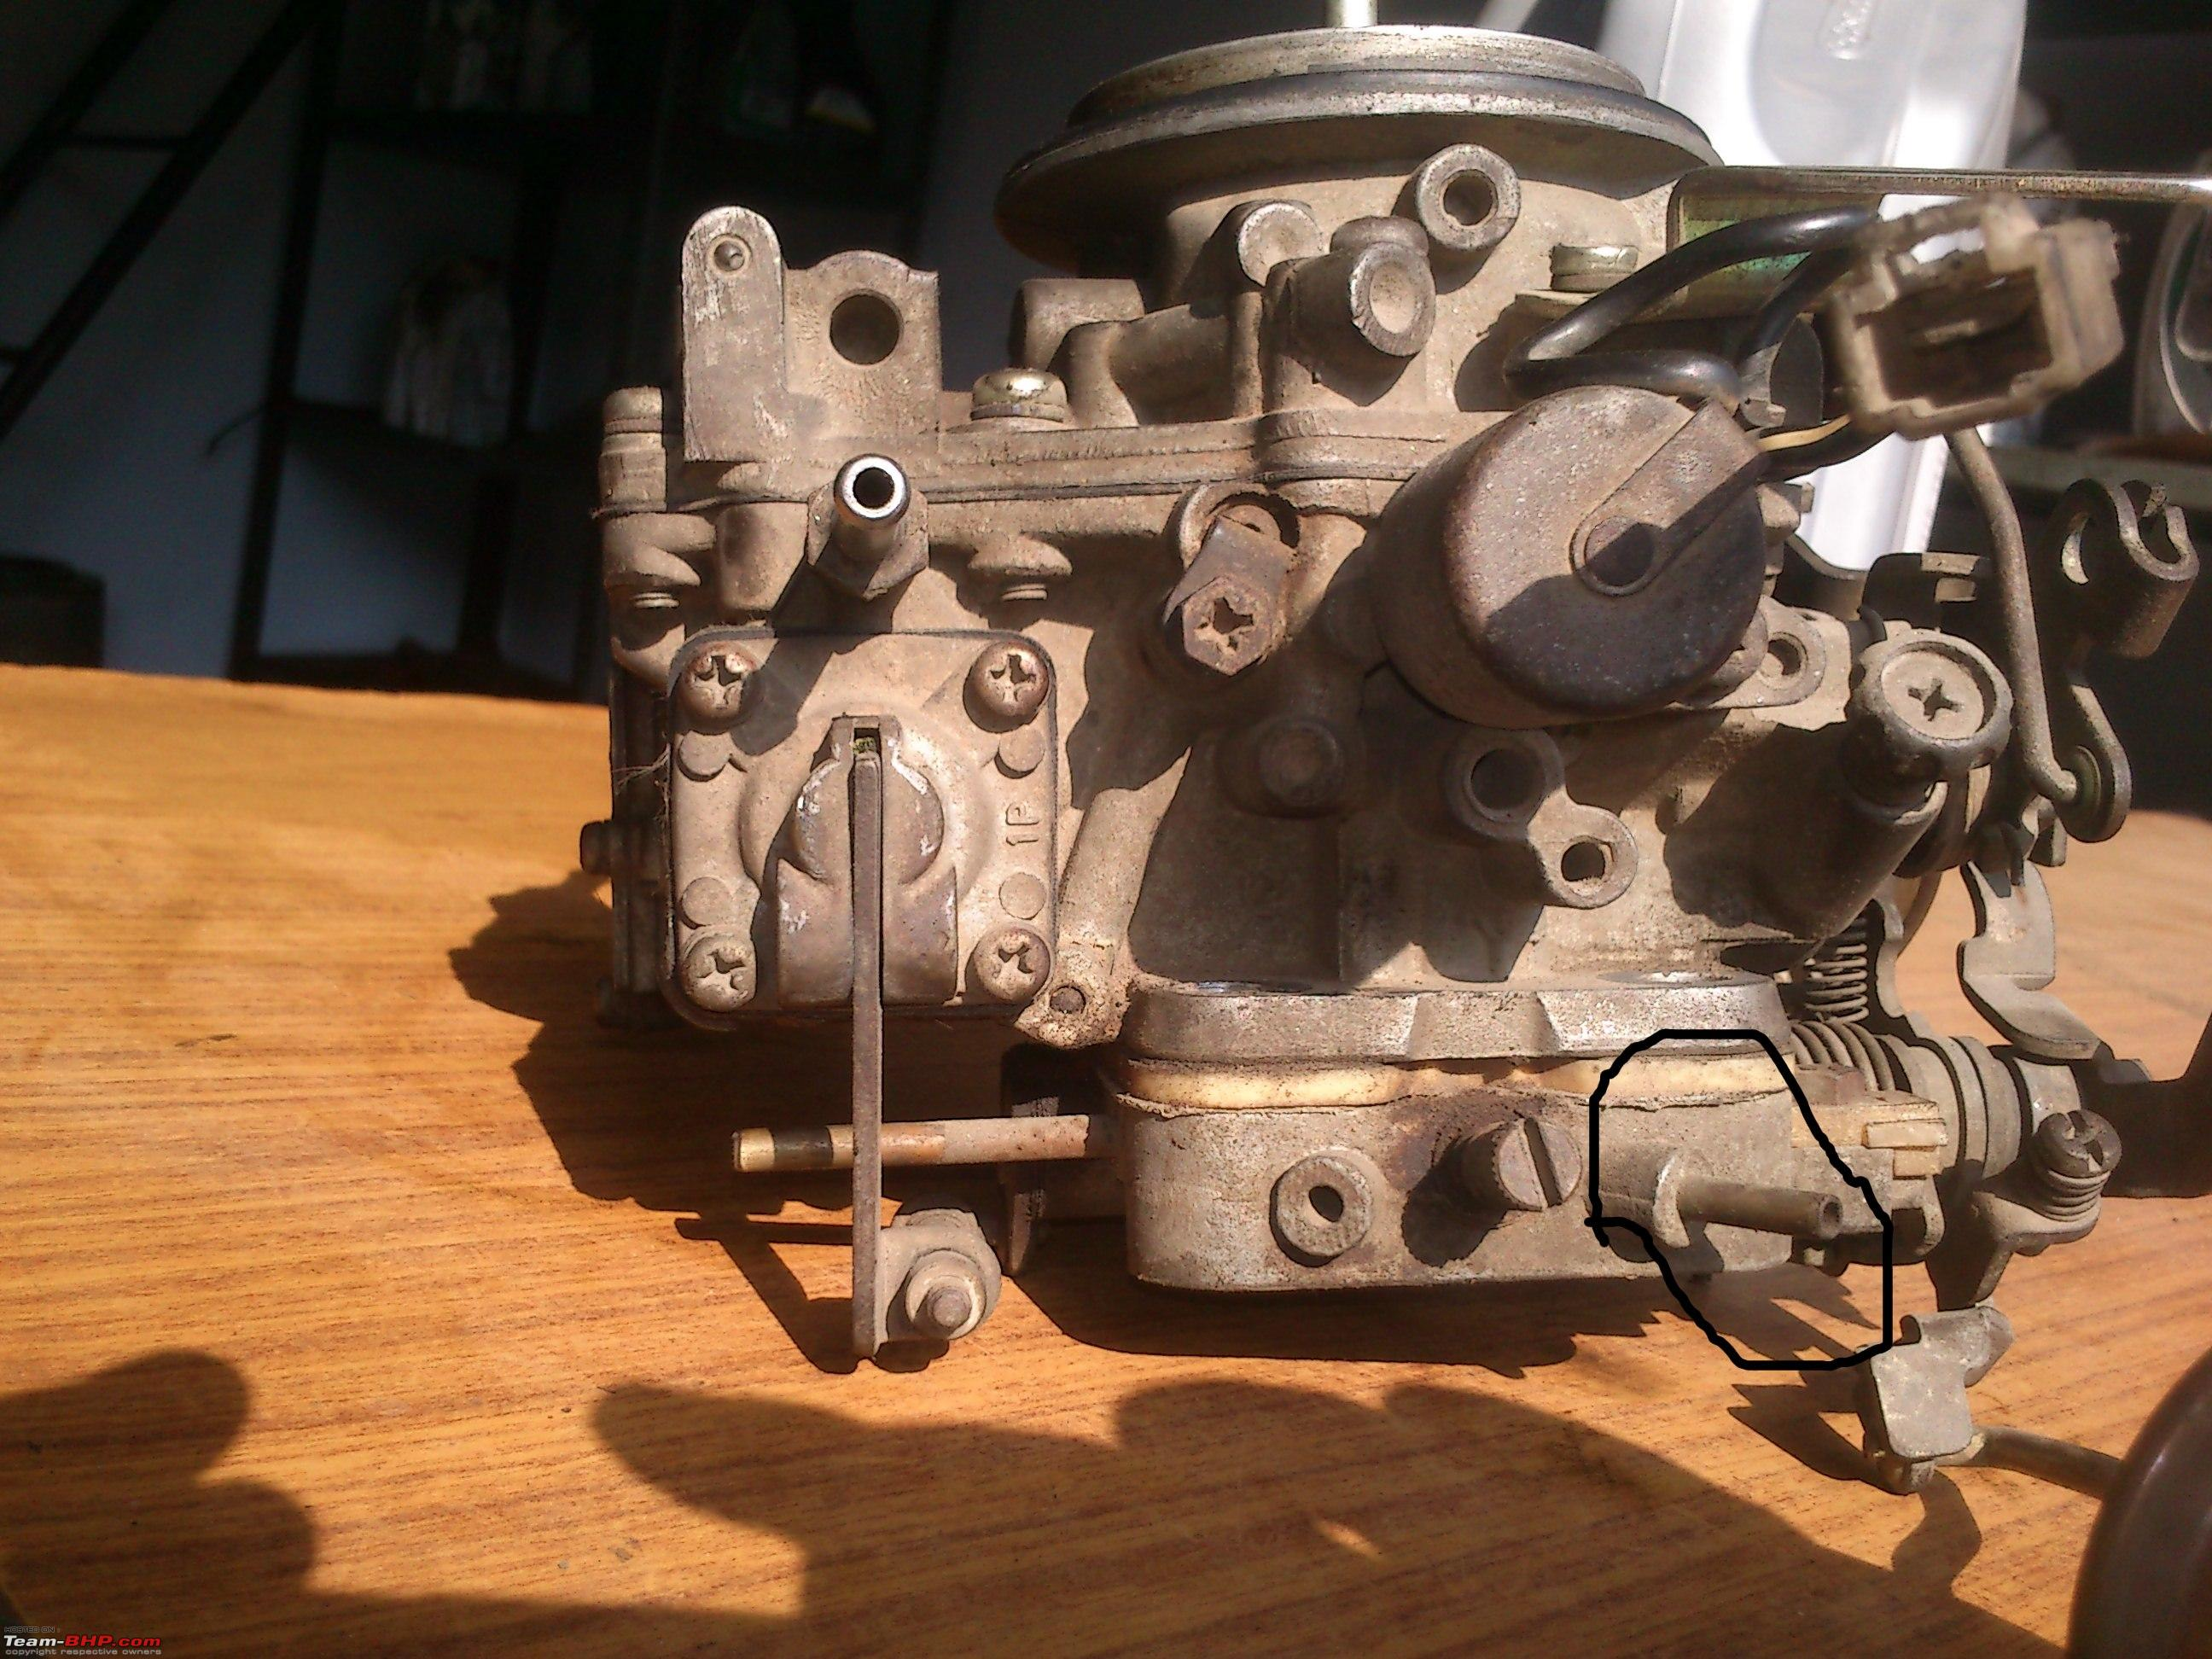 DIY : Great way to use a Sunday Part I - Carb Cleaning of Maruti 800